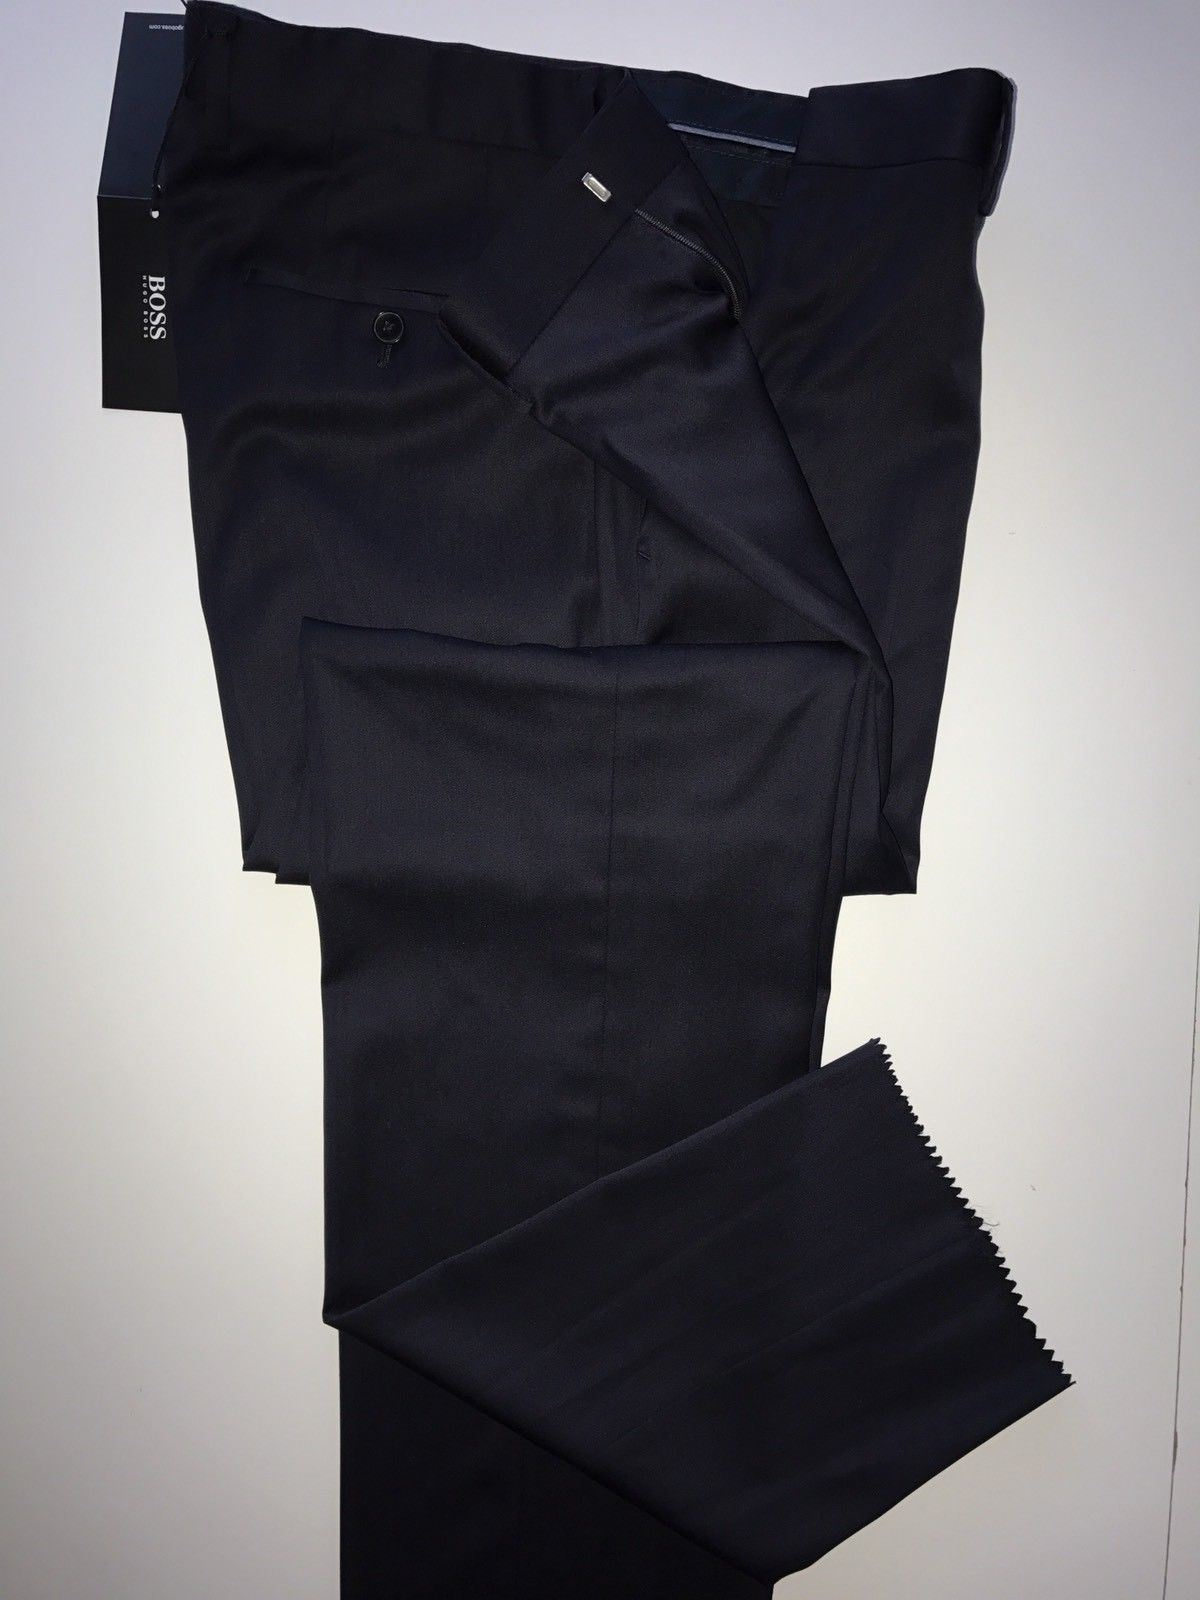 NWT $255 Boss Hugo Boss Genesis2 Mens Wool Navy Blue  Dress Pants Size 36R US